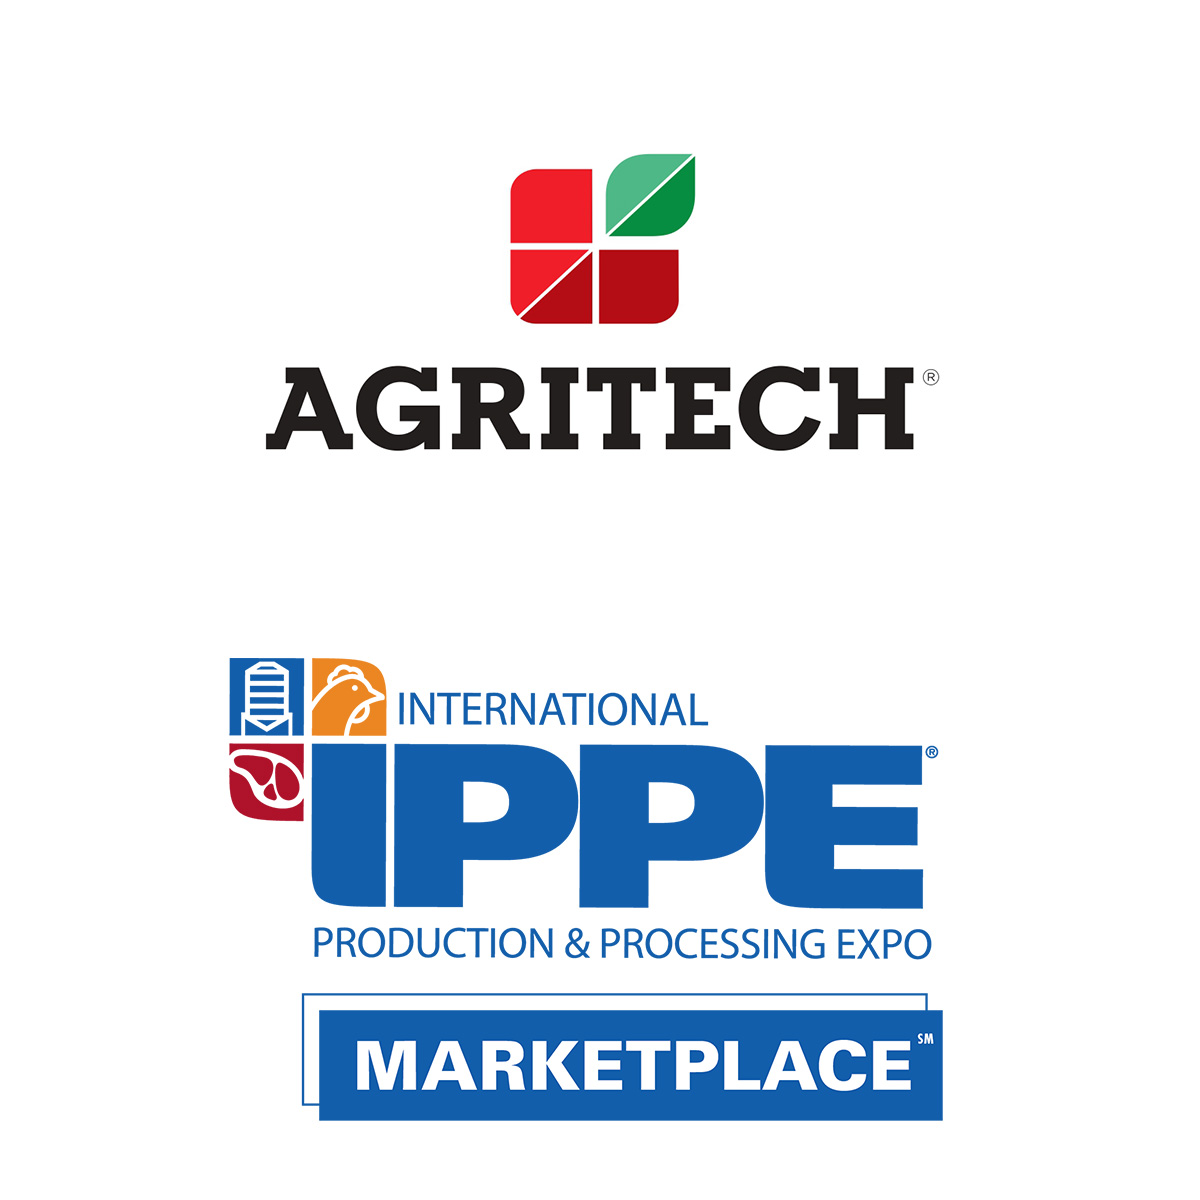 IPPE AGRITECH